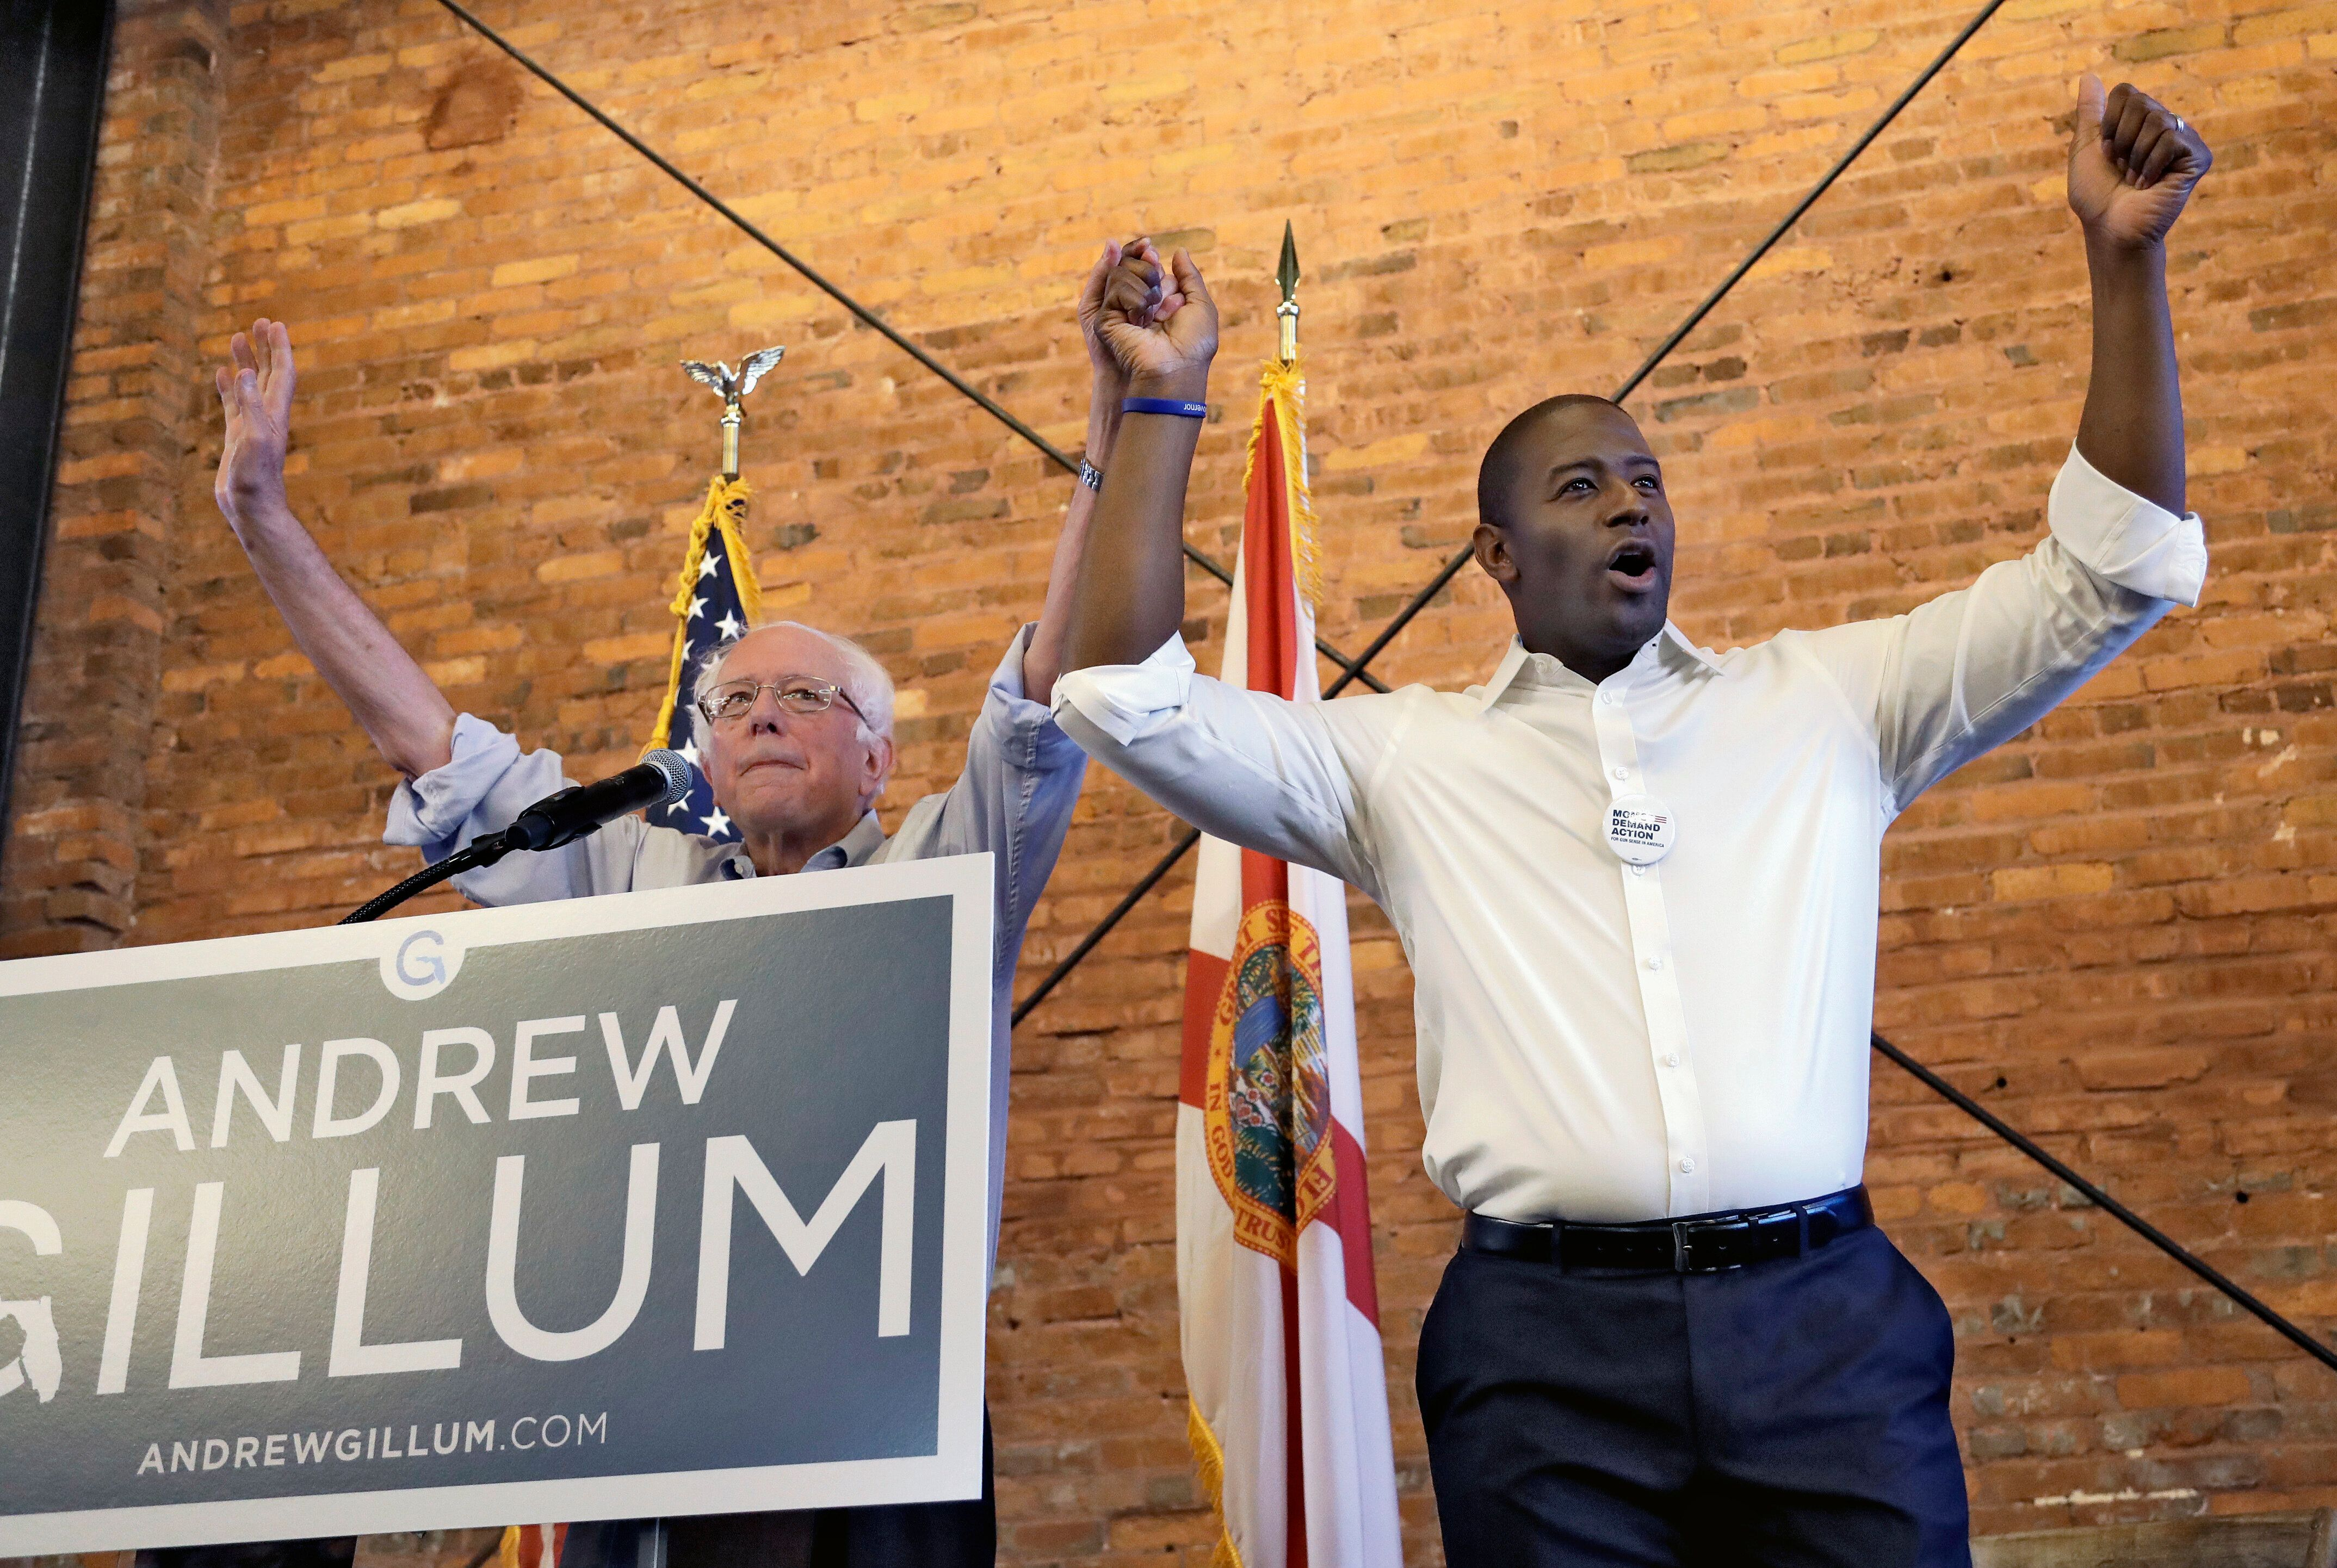 Sanders campaigns with then-Florida Democratic gubernatorial candidate Andrew Gillum in Tampa in August 2018.